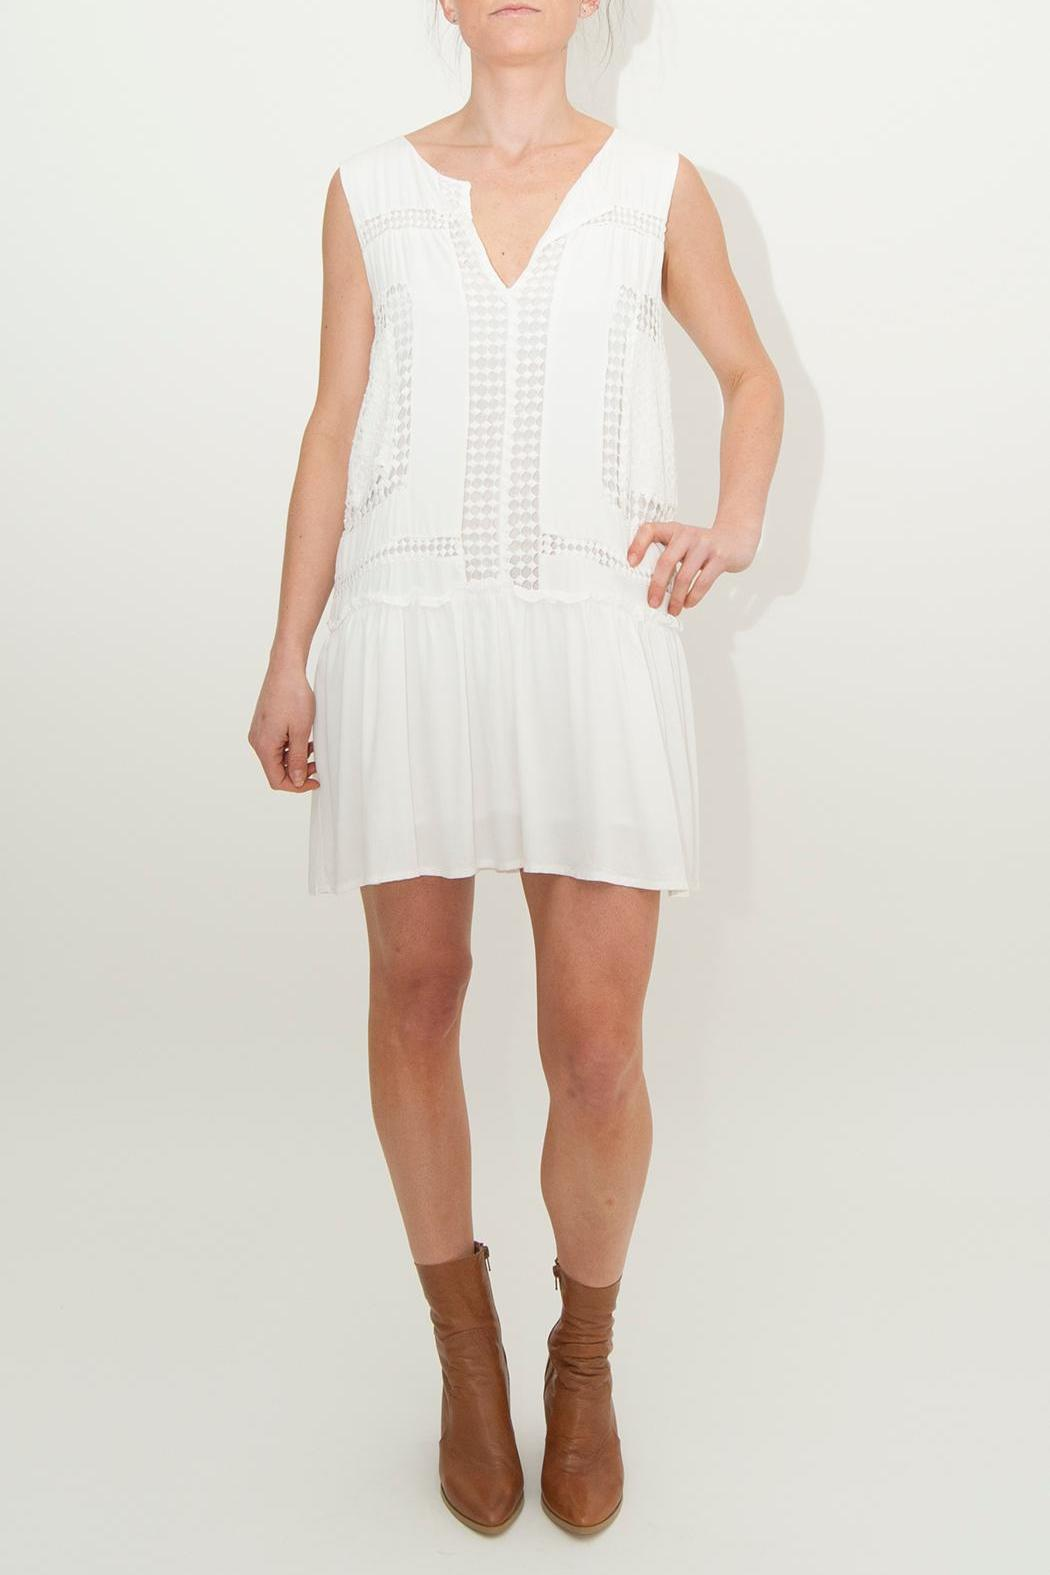 Three of Something  Oasis Drop-Waisted Dress - Front Full Image